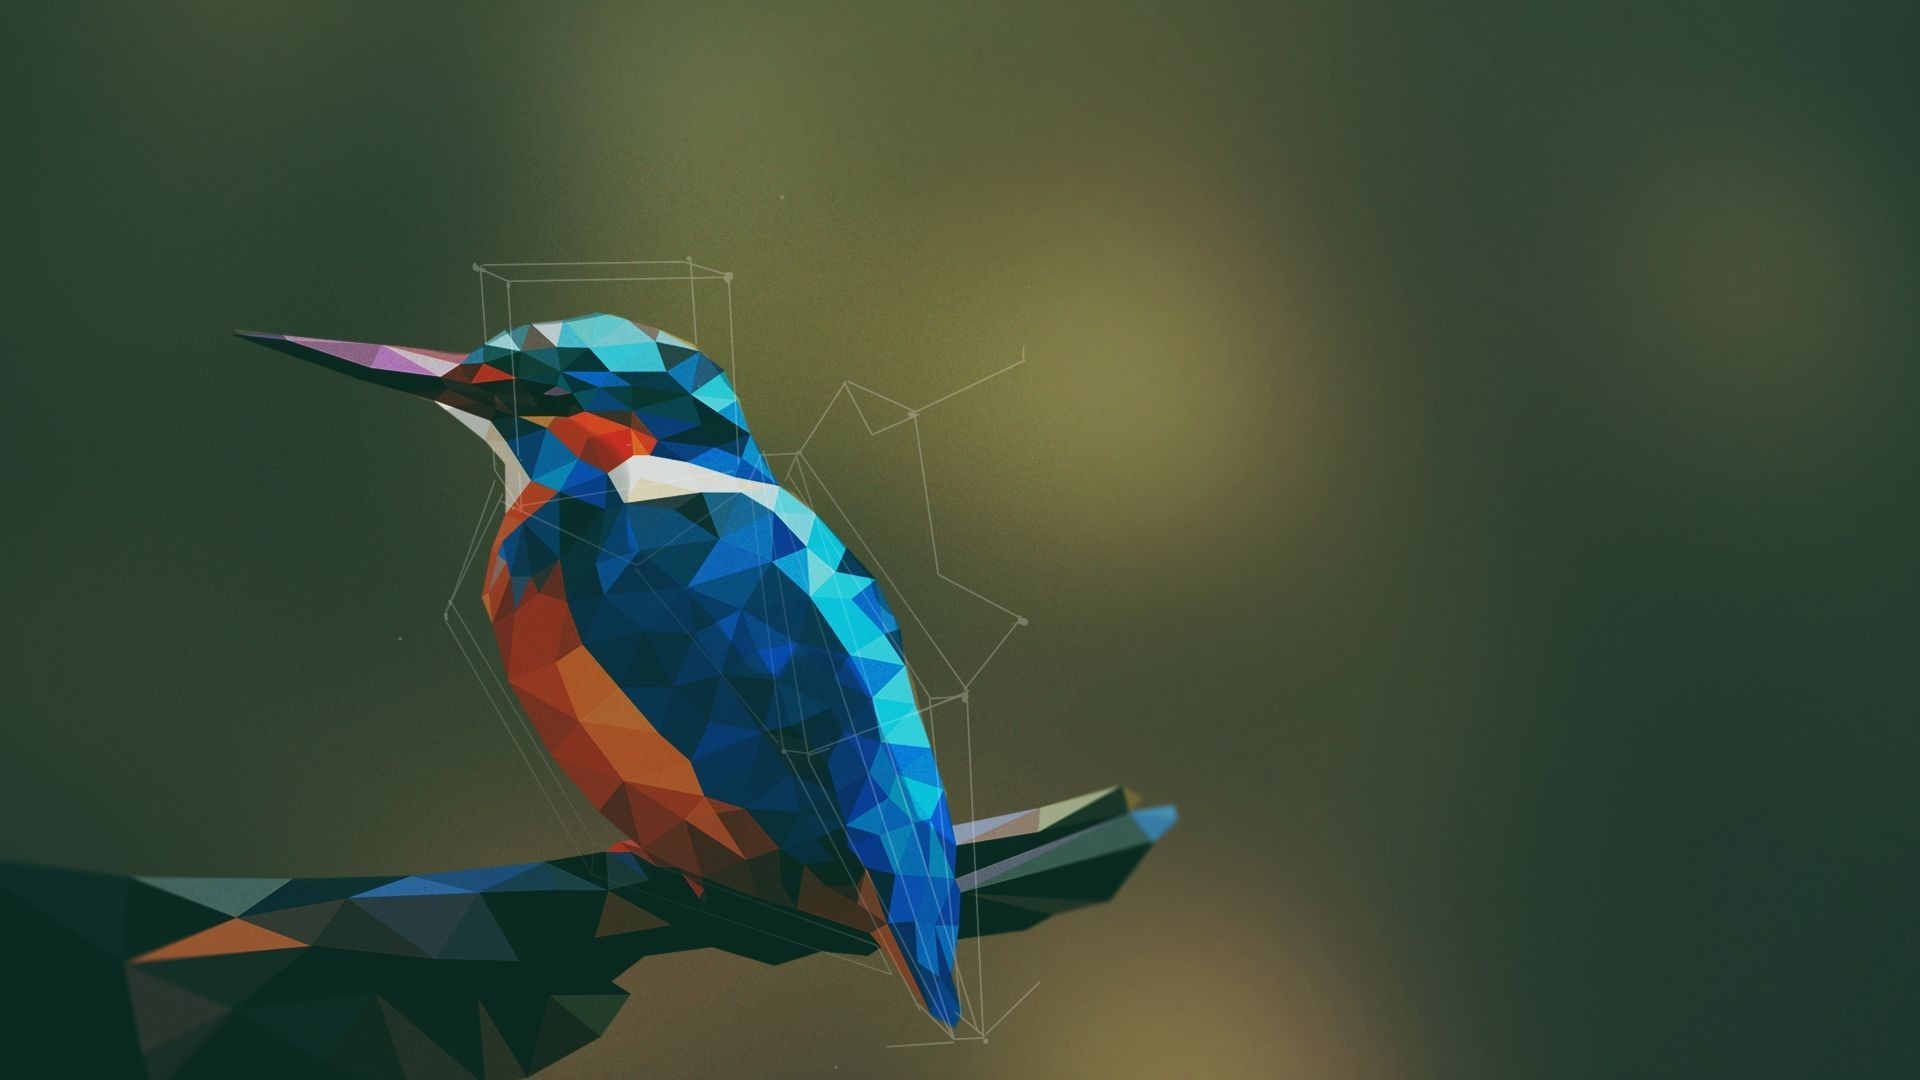 Res: 1920x1080, A low poly style art,